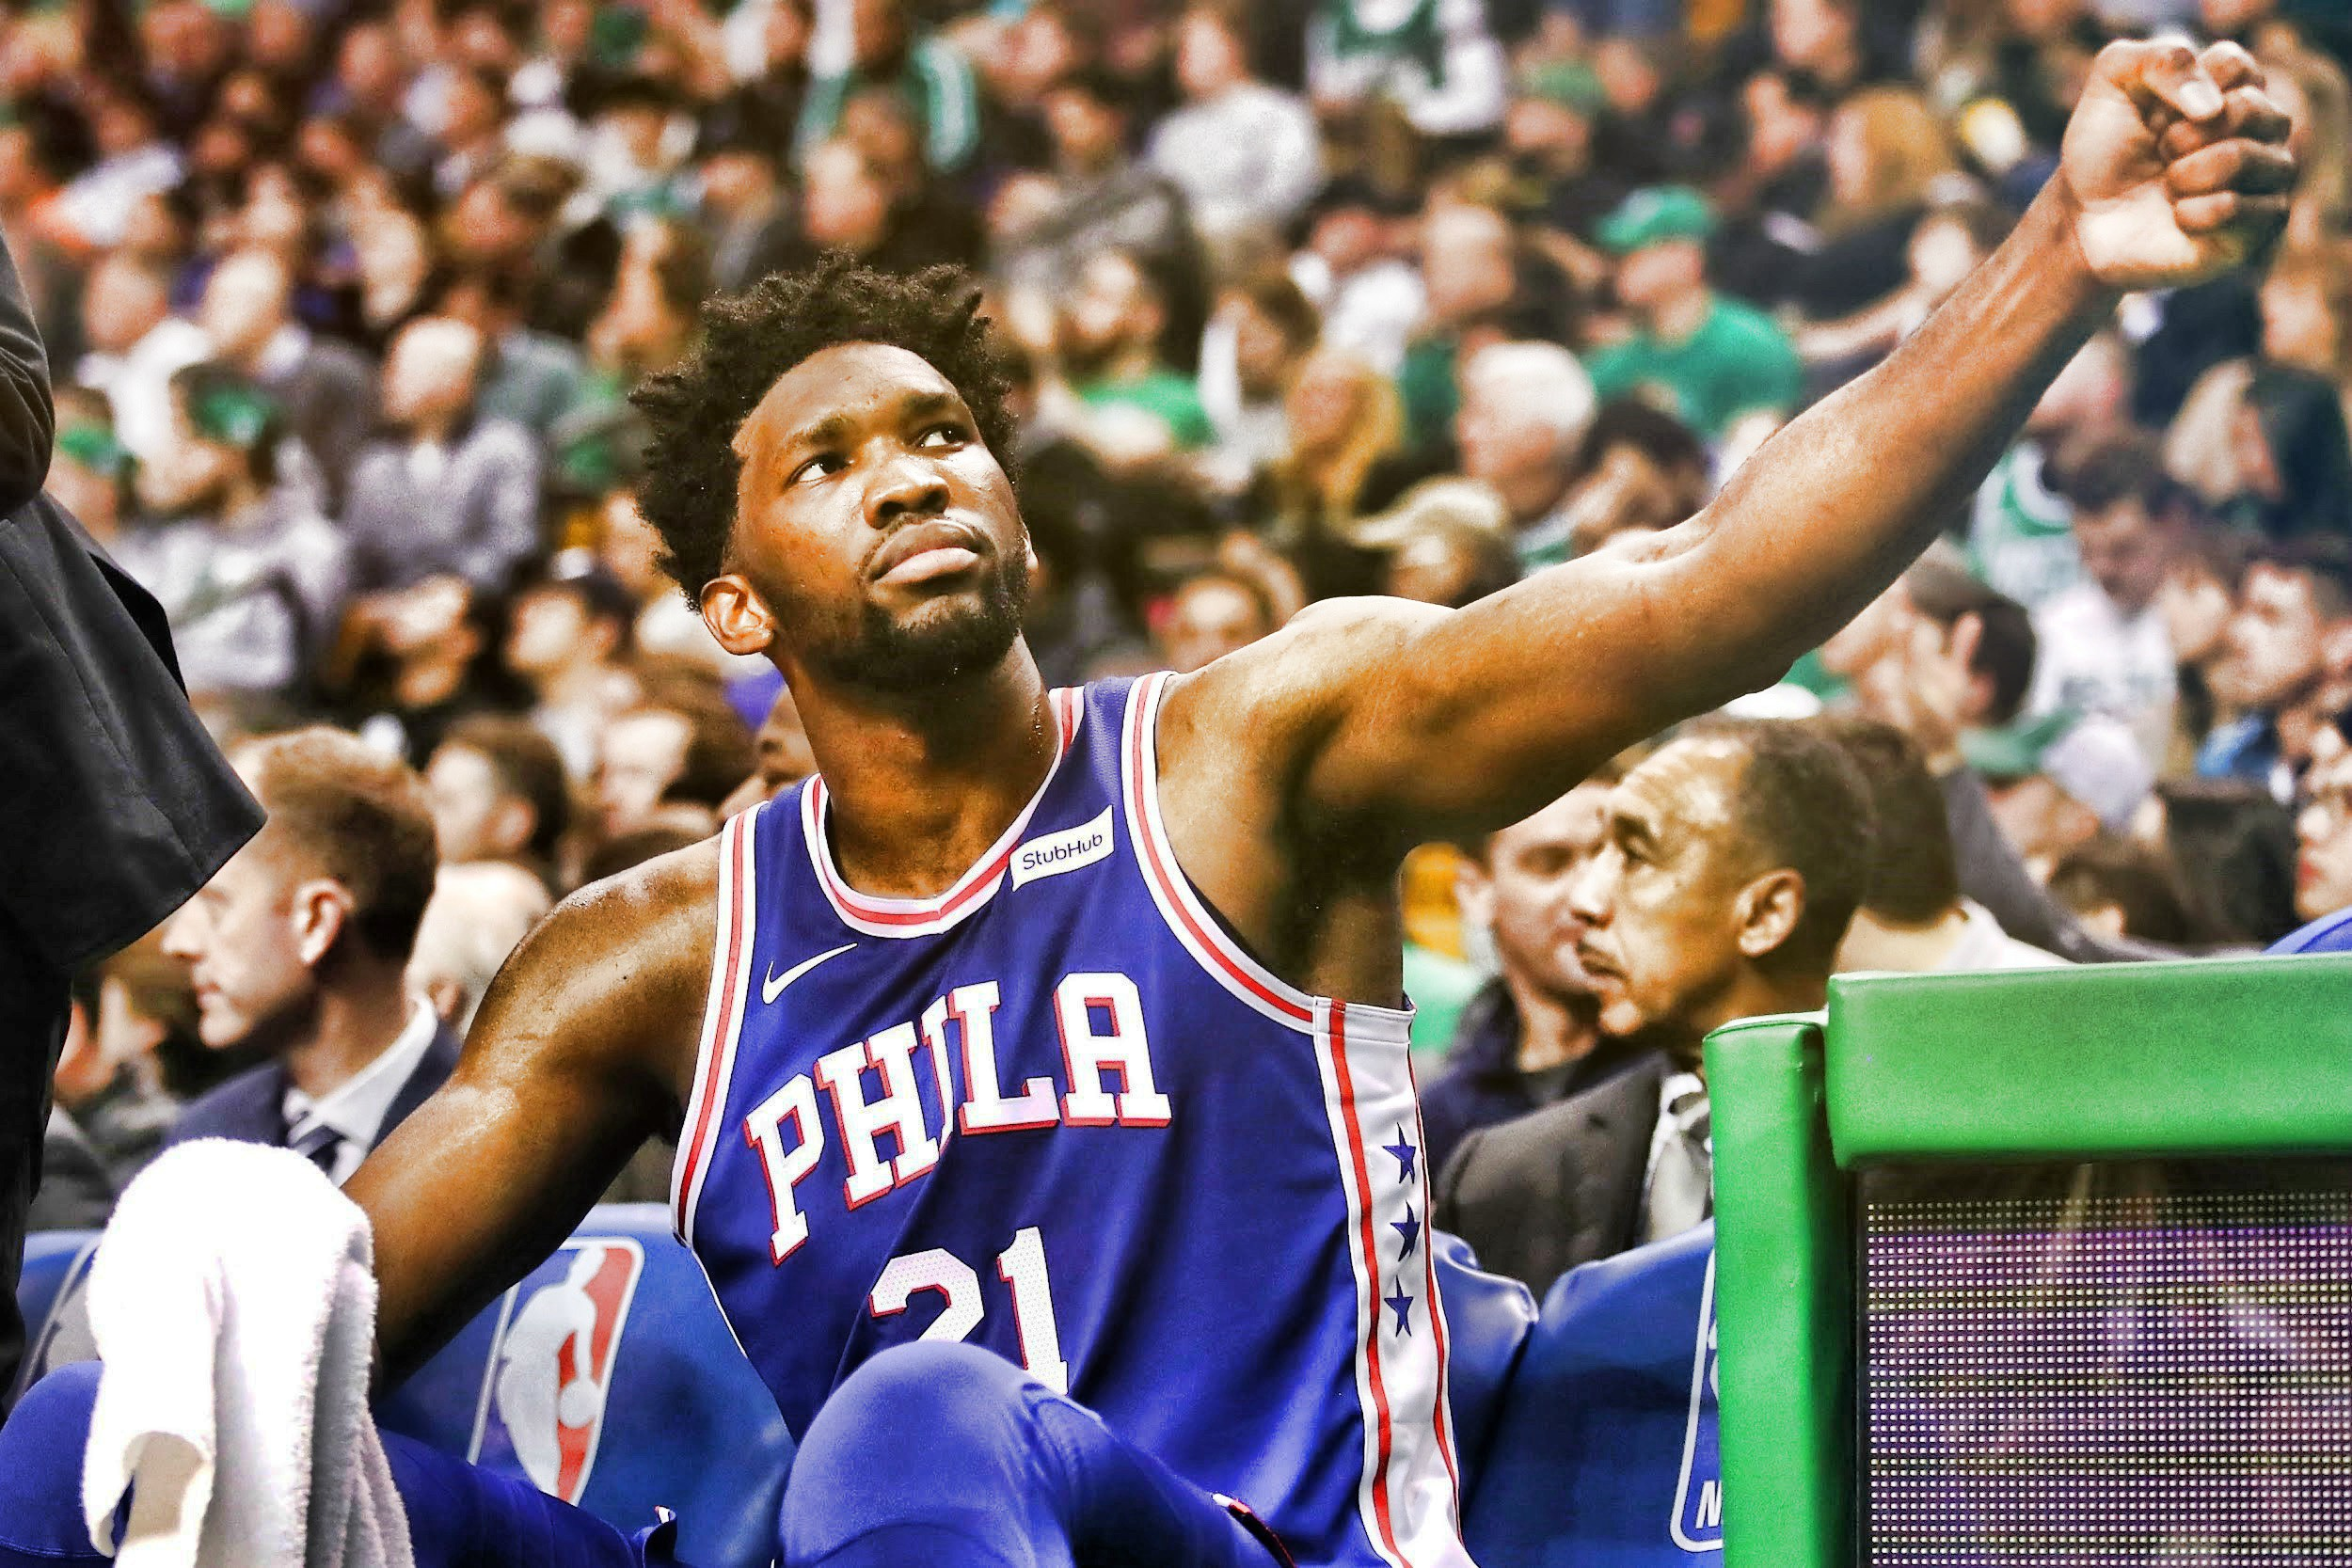 Joel Embiid's All-Star Accomplishment Is More Than Just About A Girl